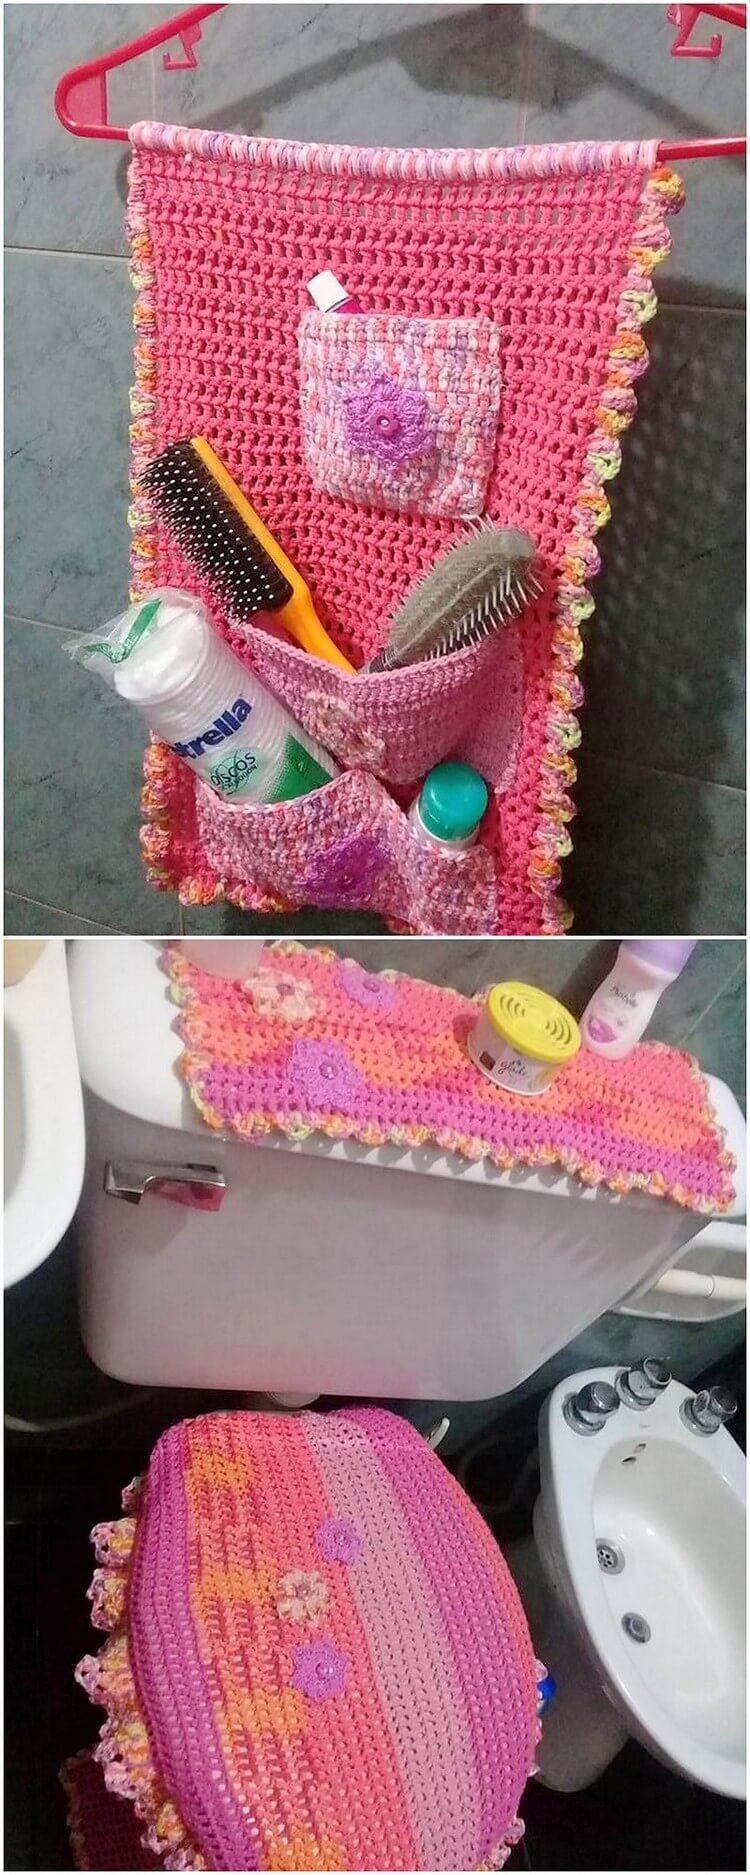 Crochet Creation for Bathroom.jpg